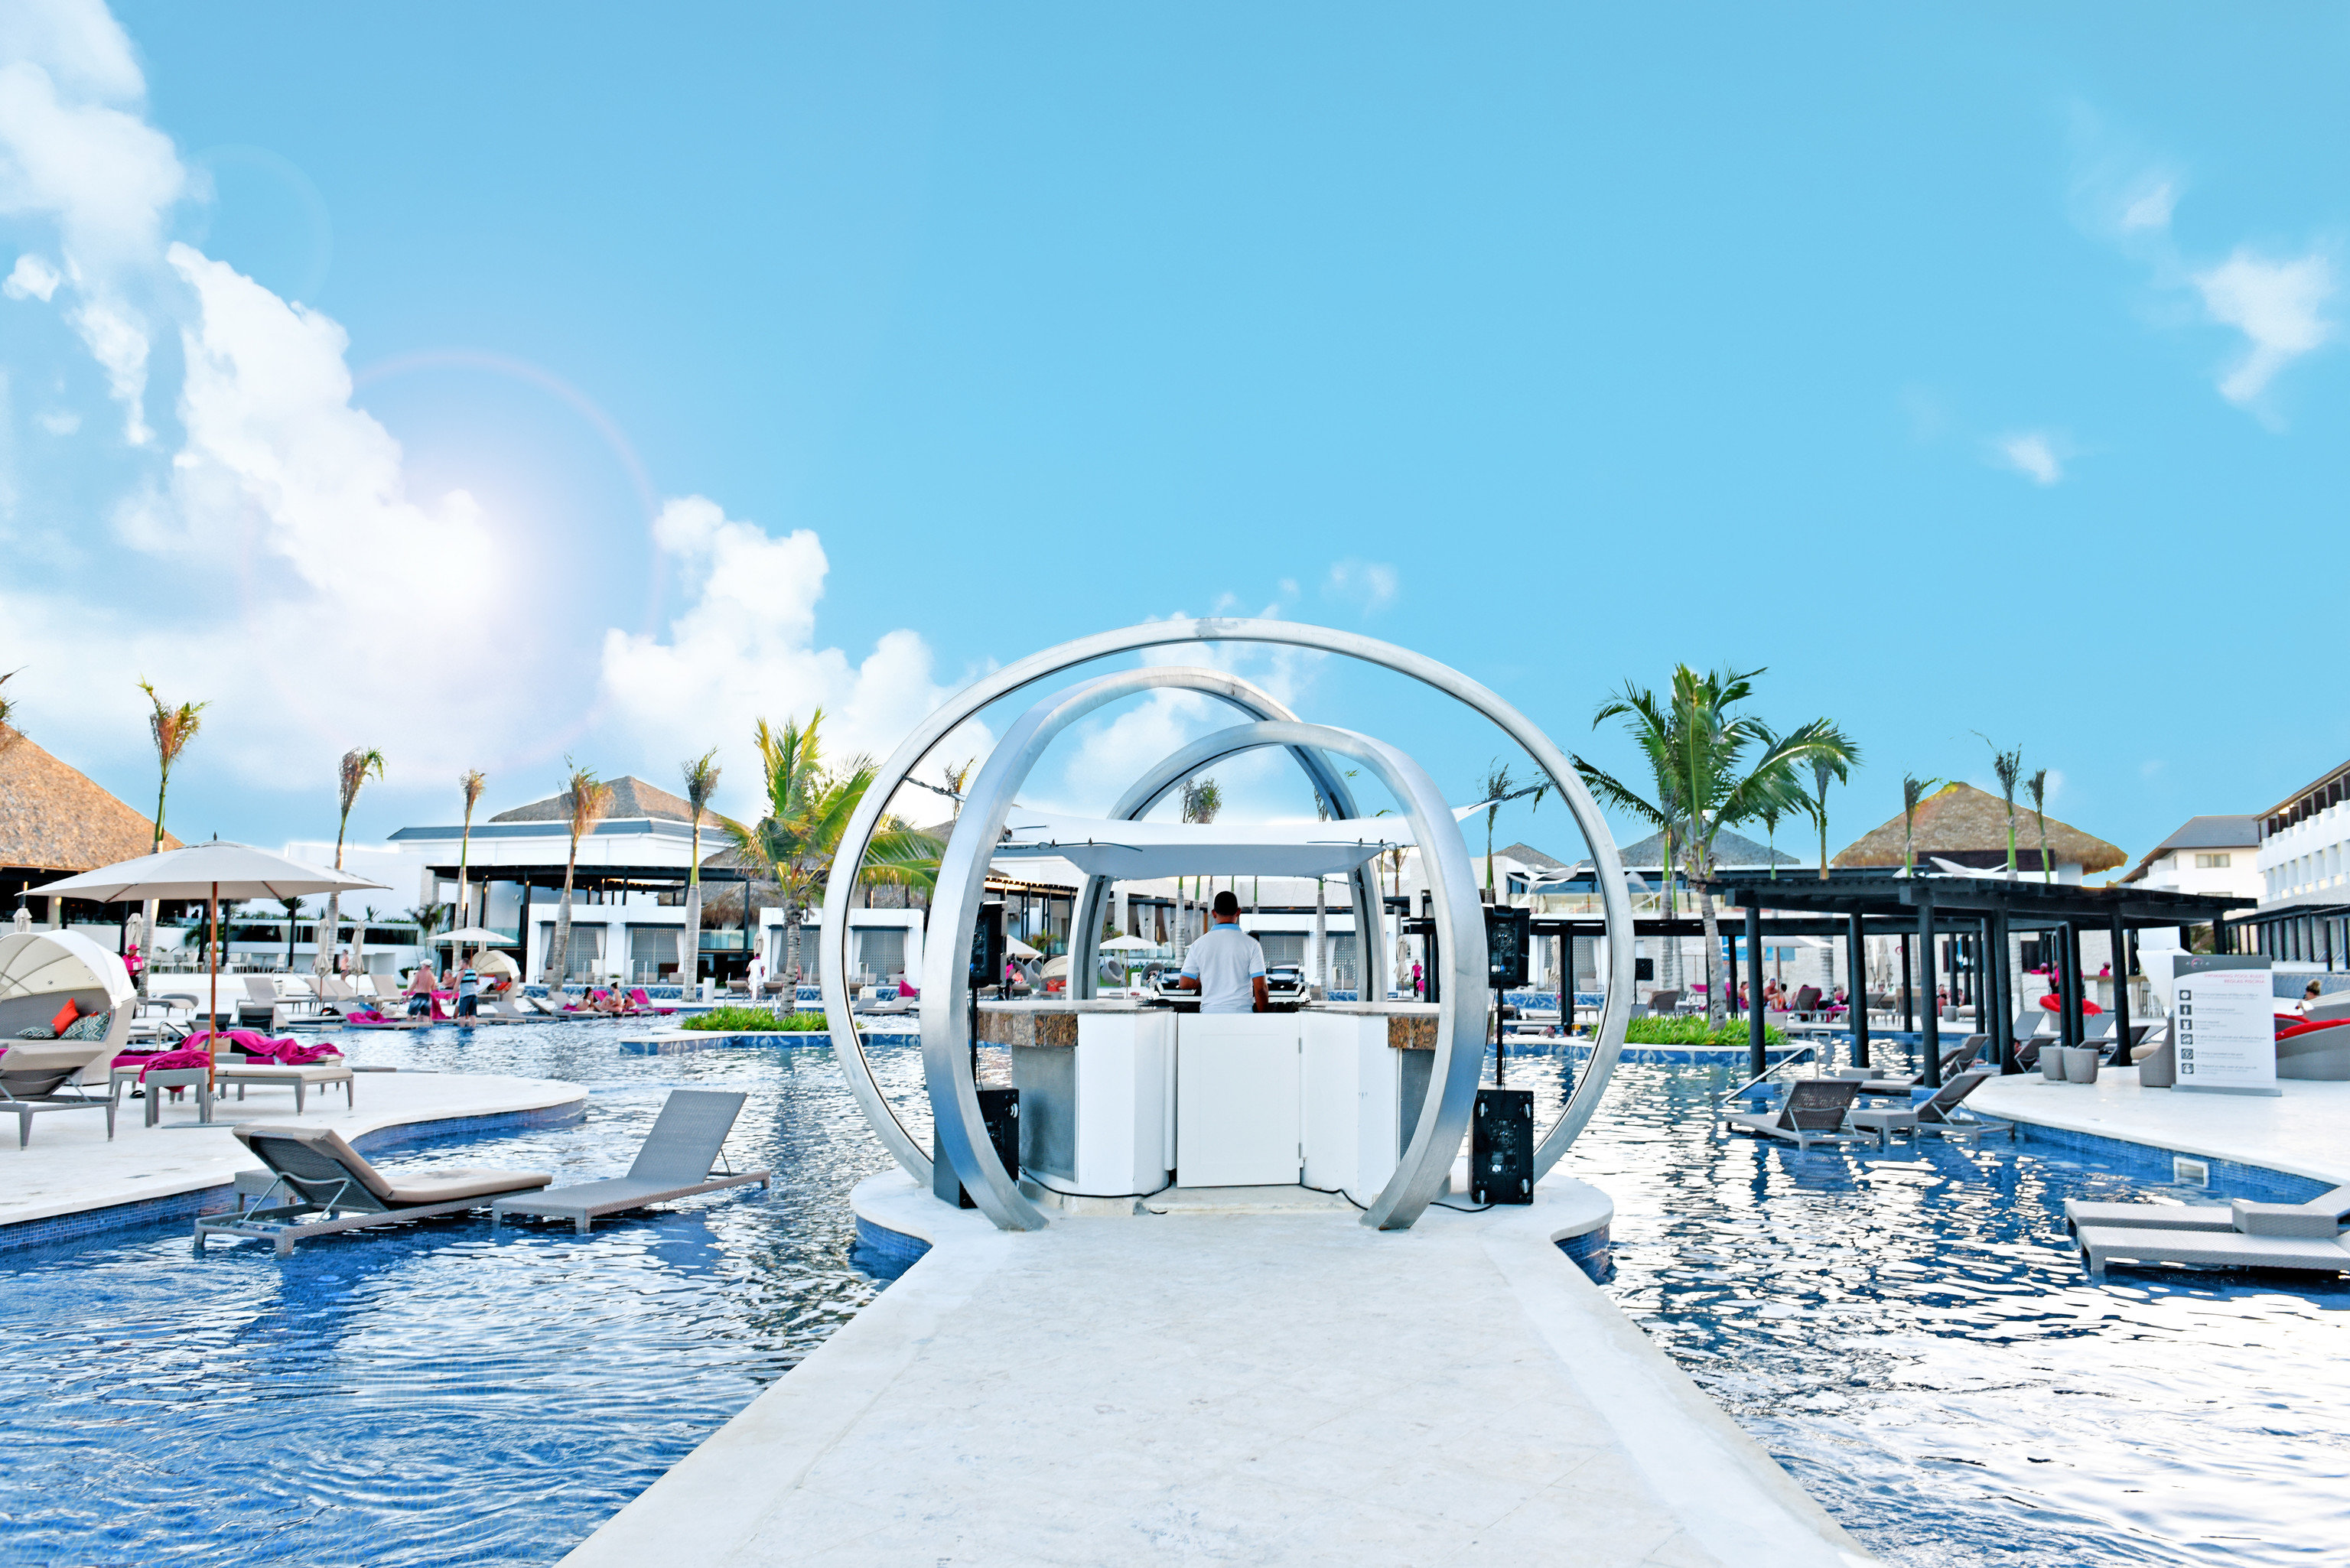 All-Inclusive Resorts Hotels Solo Travel sky outdoor Boat leisure marina Resort vacation swimming pool dock Water park amusement park Sea vehicle boating park